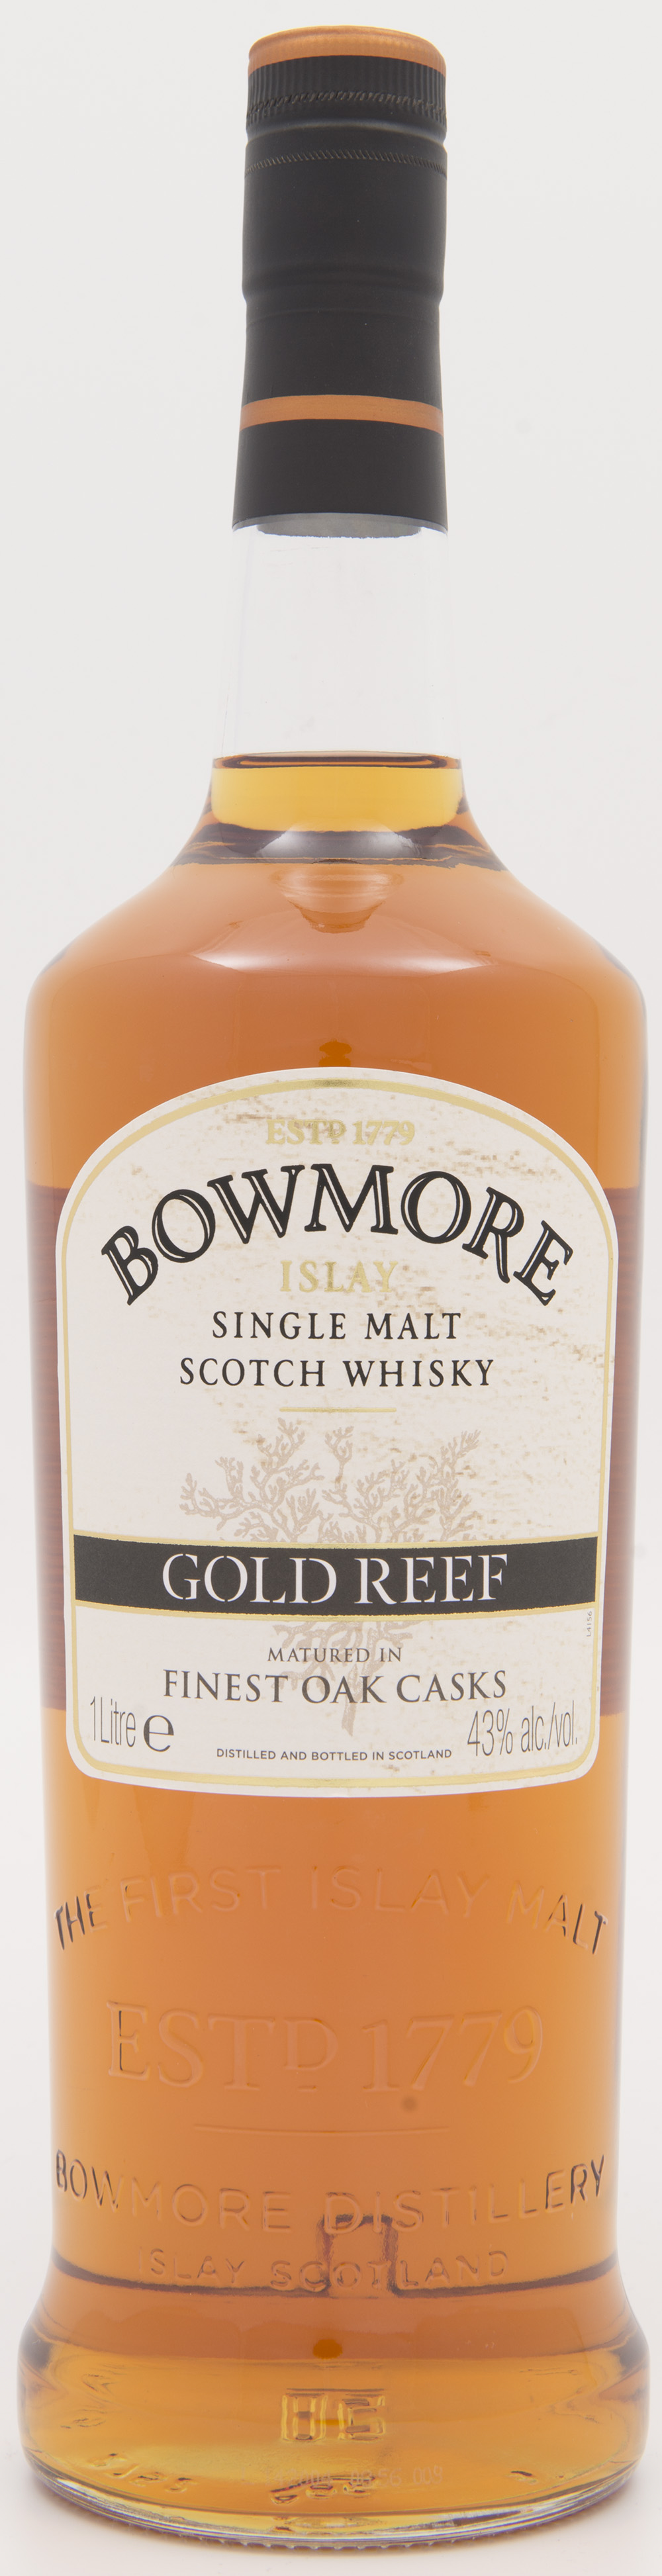 Billede: DSC_3854 Bowmore Gold Reef - bottle front.jpg